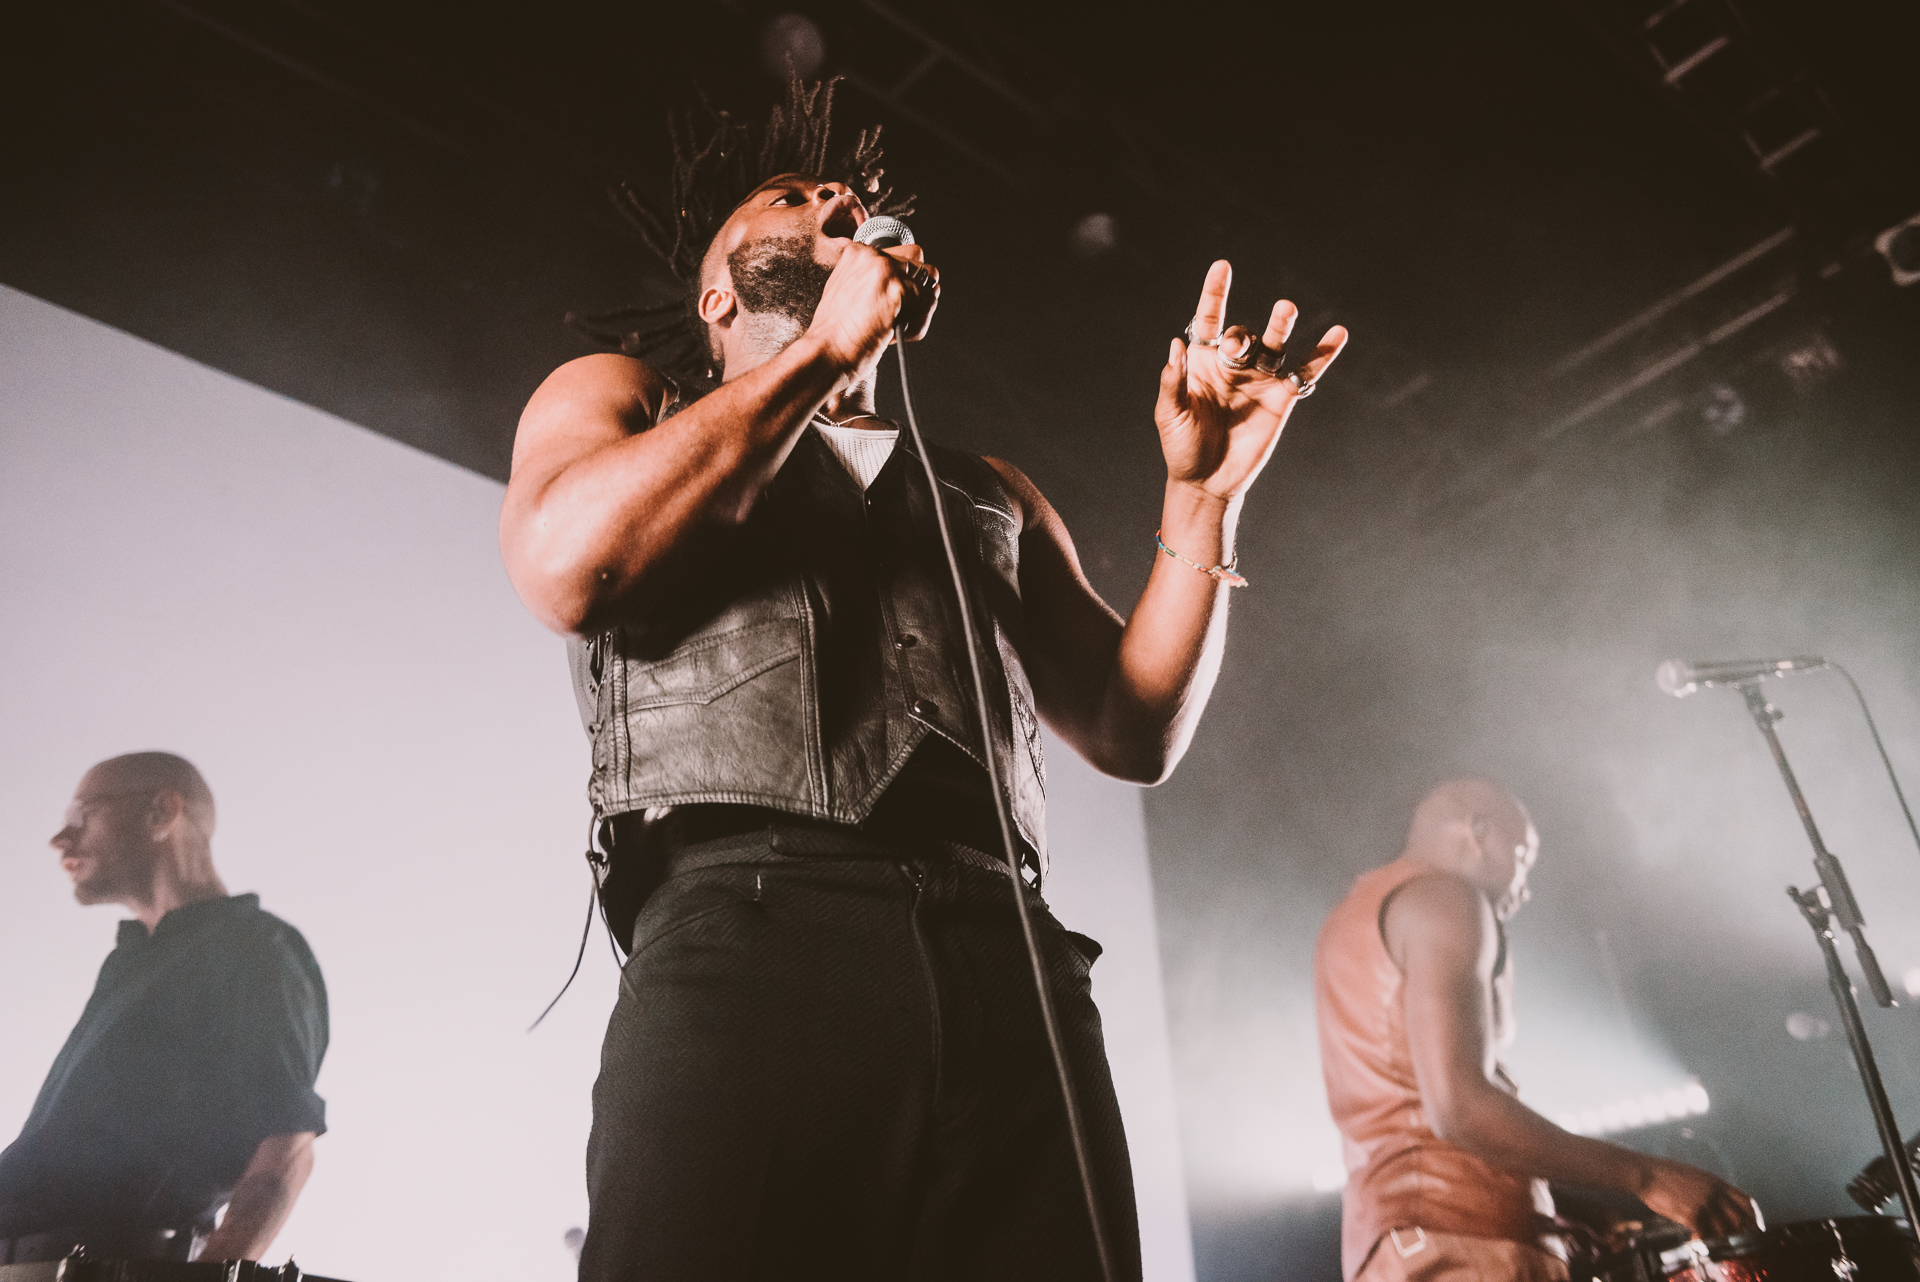 1_Young_Fathers-VENUE-Timothy_Nguyen-20181117 (17 of 23).jpg